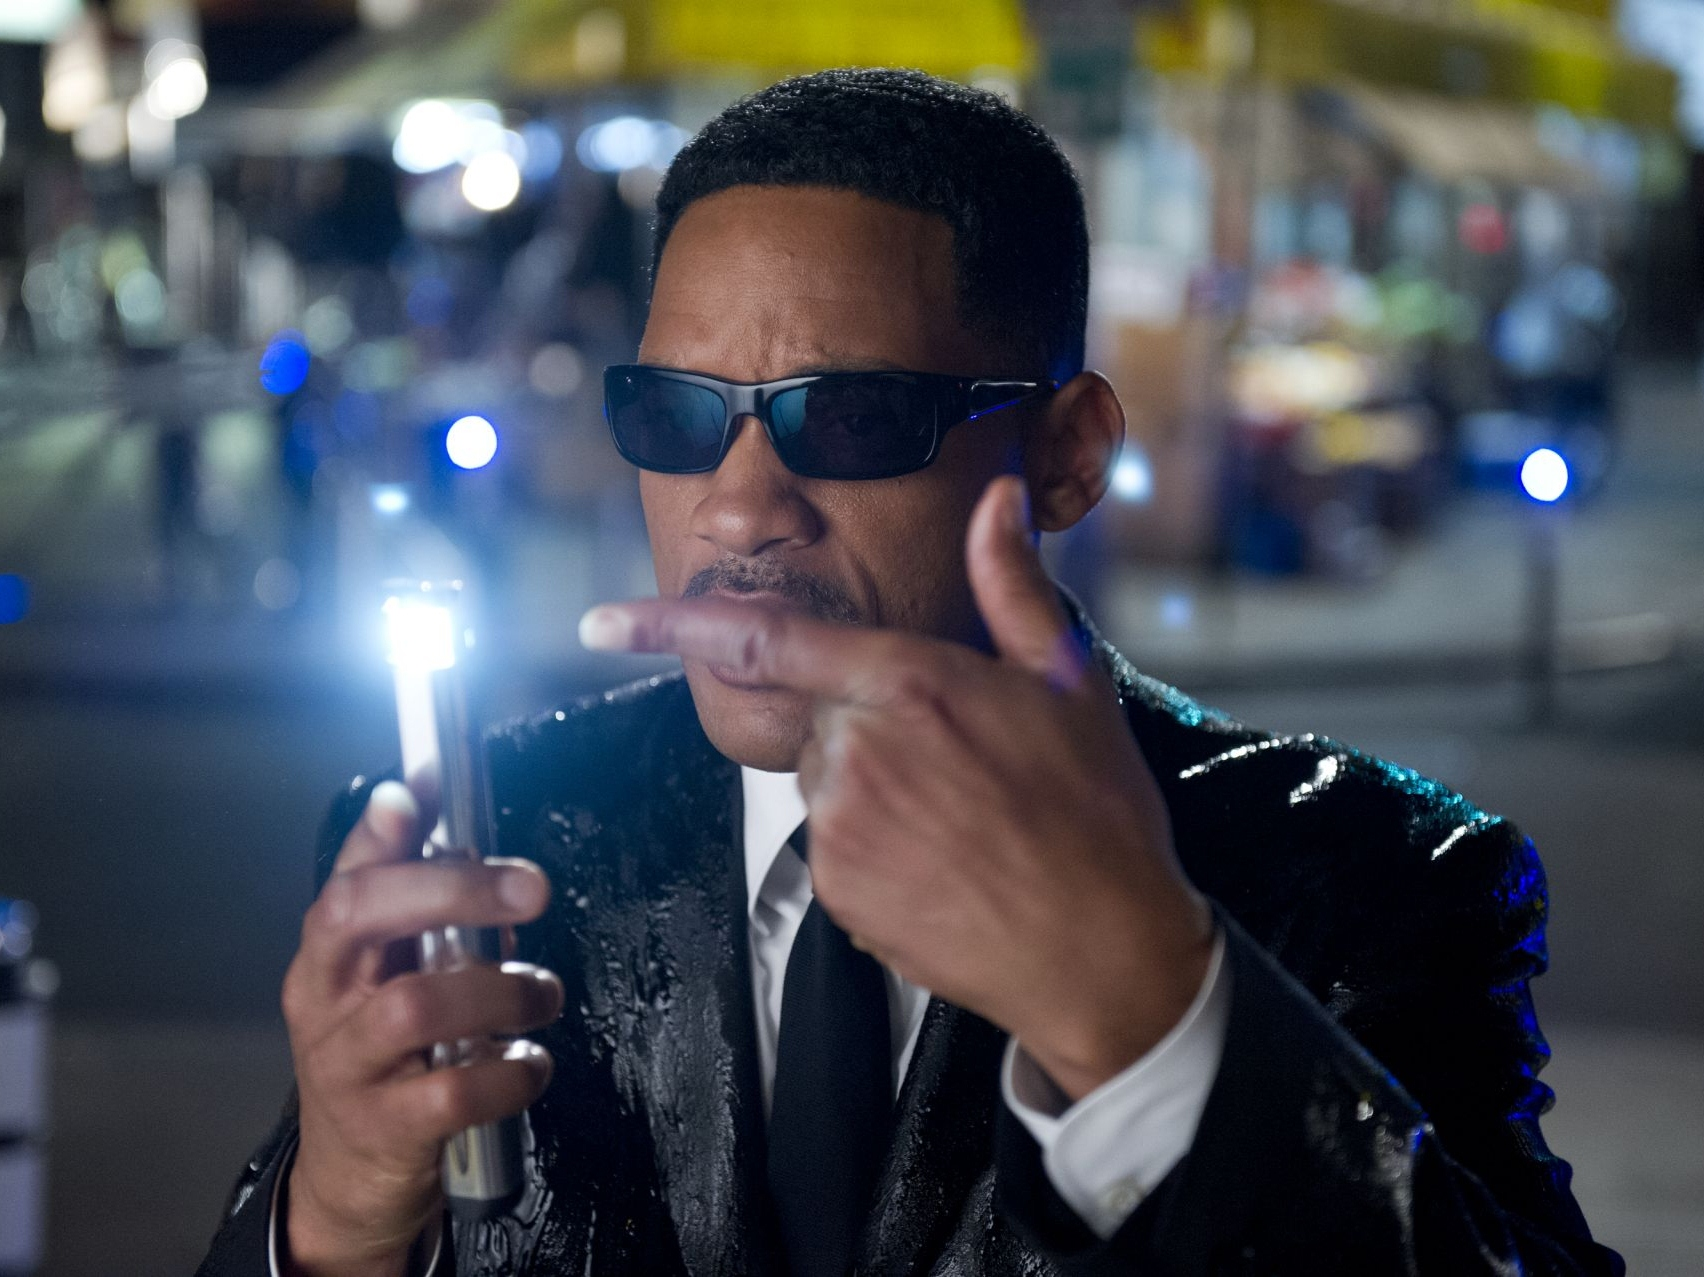 'Men in Black III' Review: Brolin, Smith Keep Aging Franchise Alive